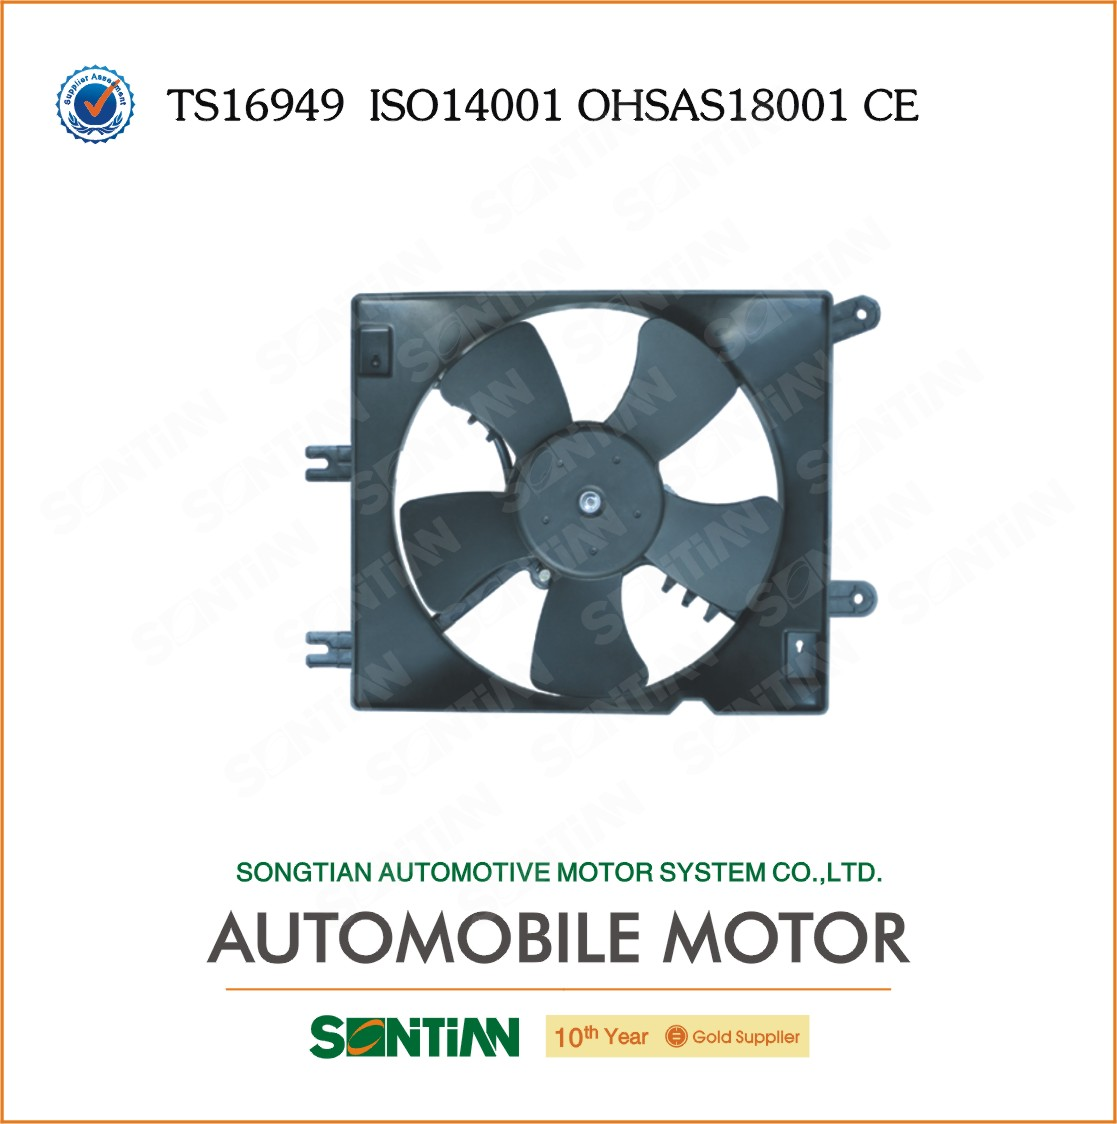 DAEWOO Nubira Saloon Electric Fan Motor 96553241 Made In China